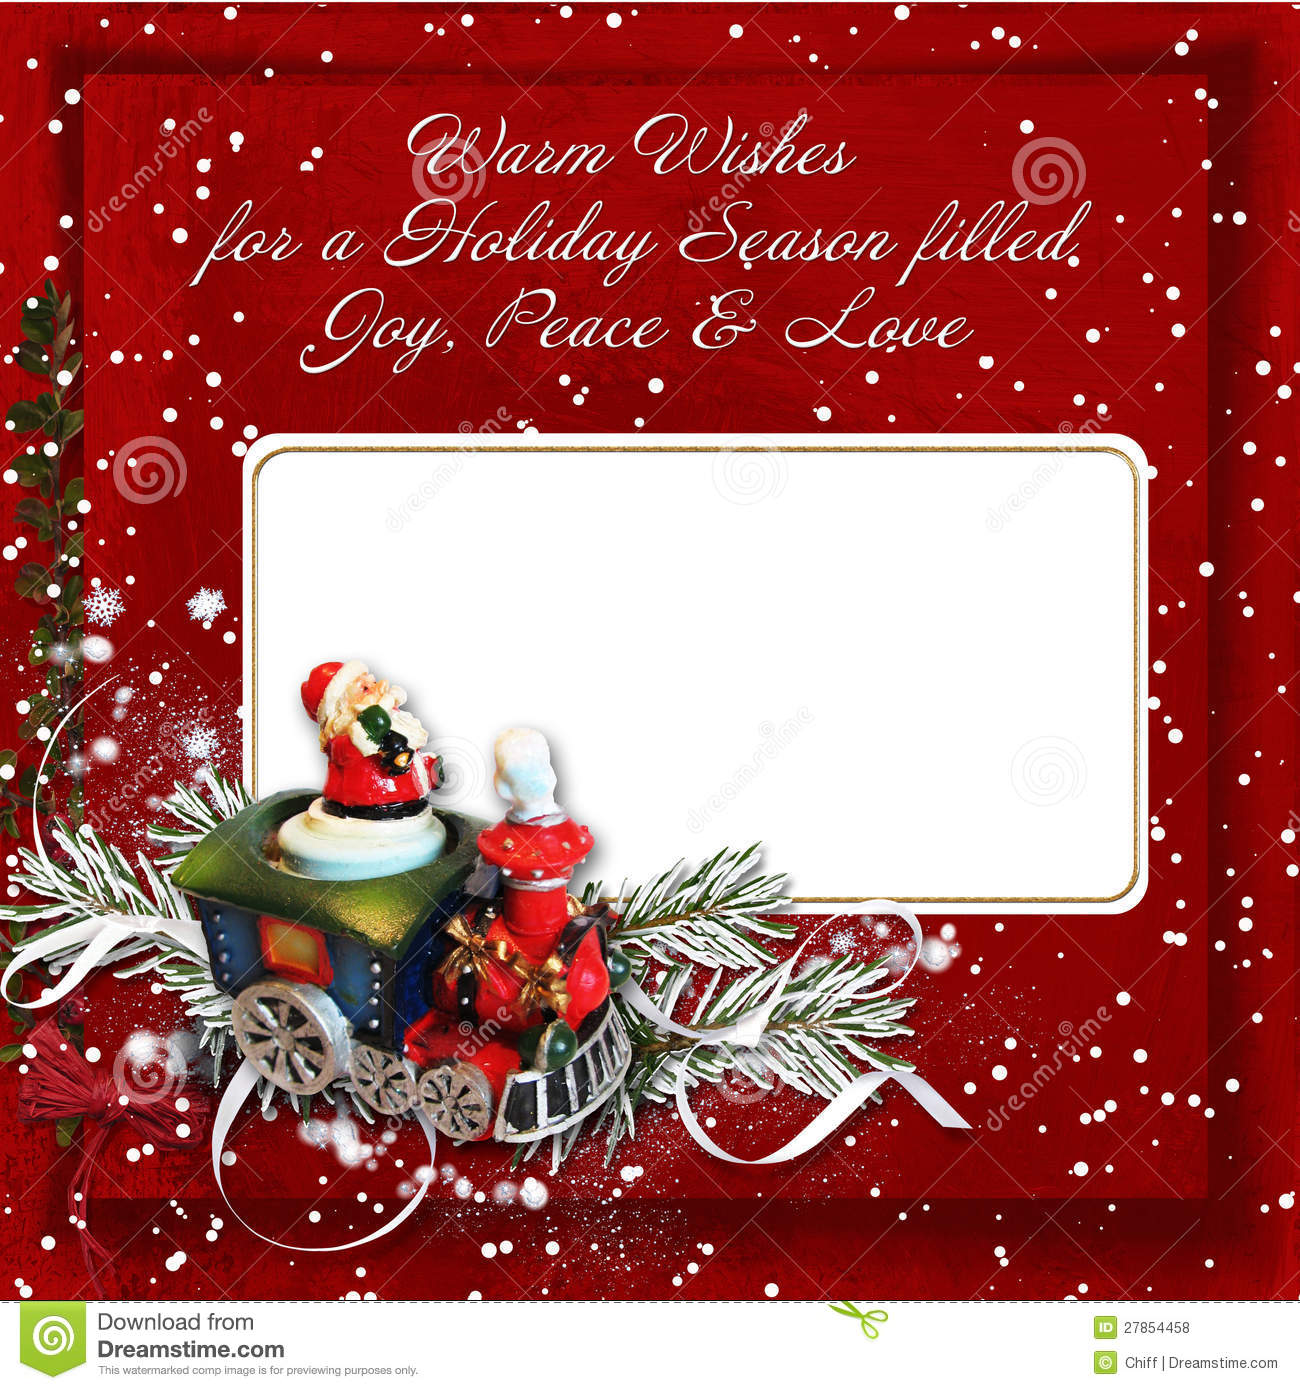 Christmas greeting card with warm wishes stock illustration christmas greeting card with warm wishes m4hsunfo